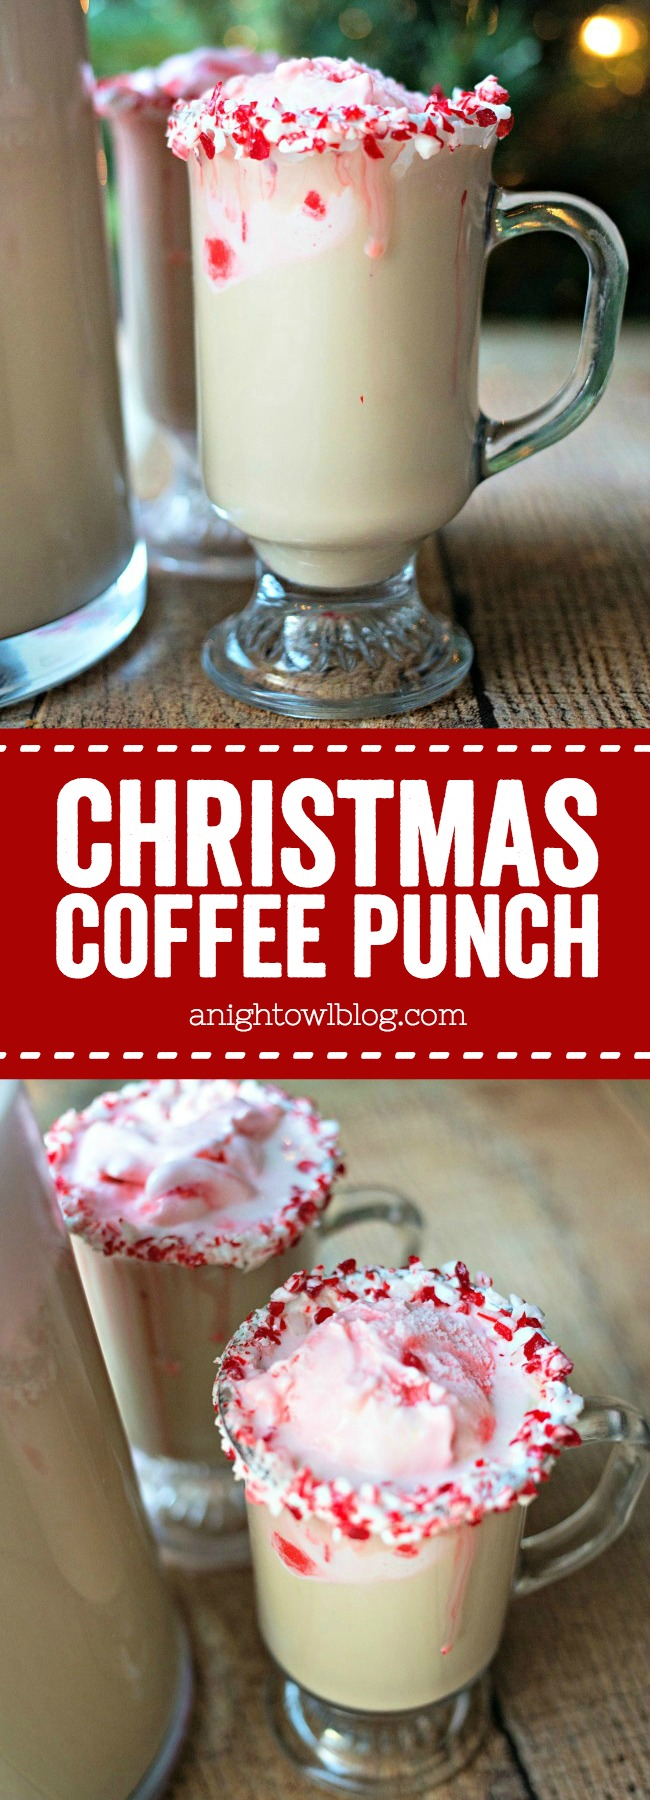 Perfect for holiday entertaining, this Christmas Coffee Punch is easy, festive and delicious! Just a few simple ingredients and this punch will be the talk of the party!